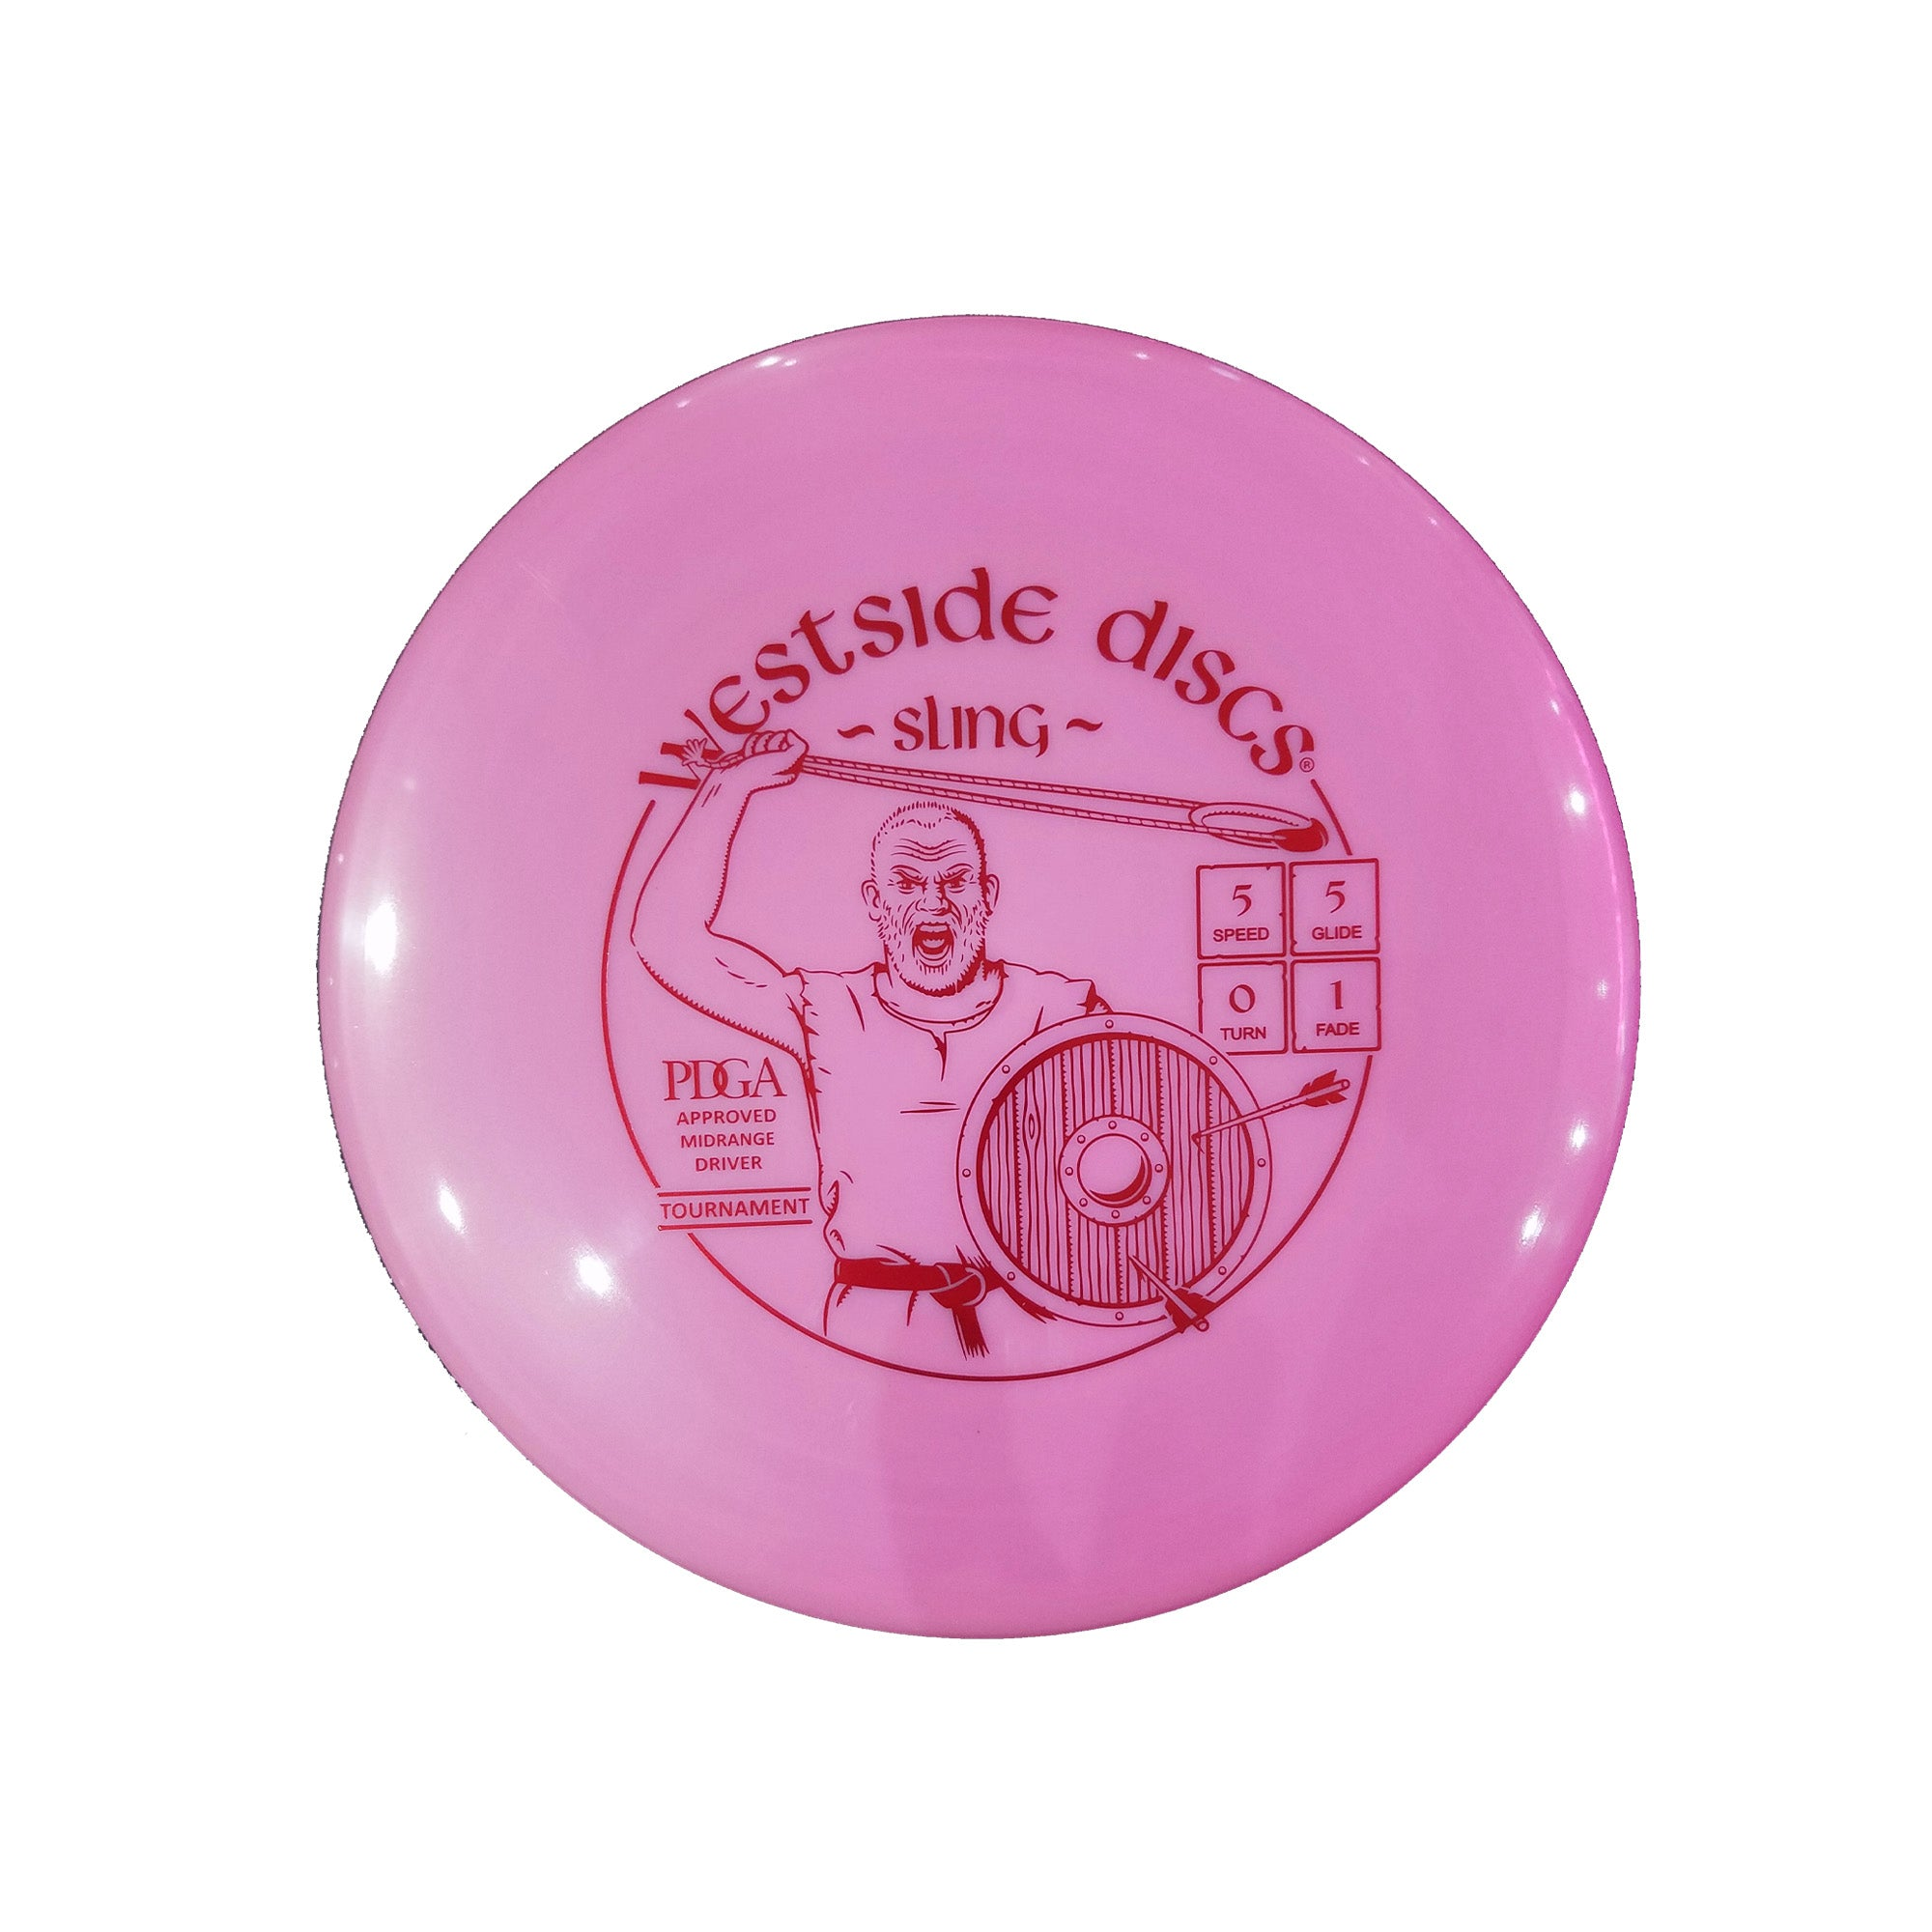 Westside Discs Tournament Sling Midrange Disc - 177g